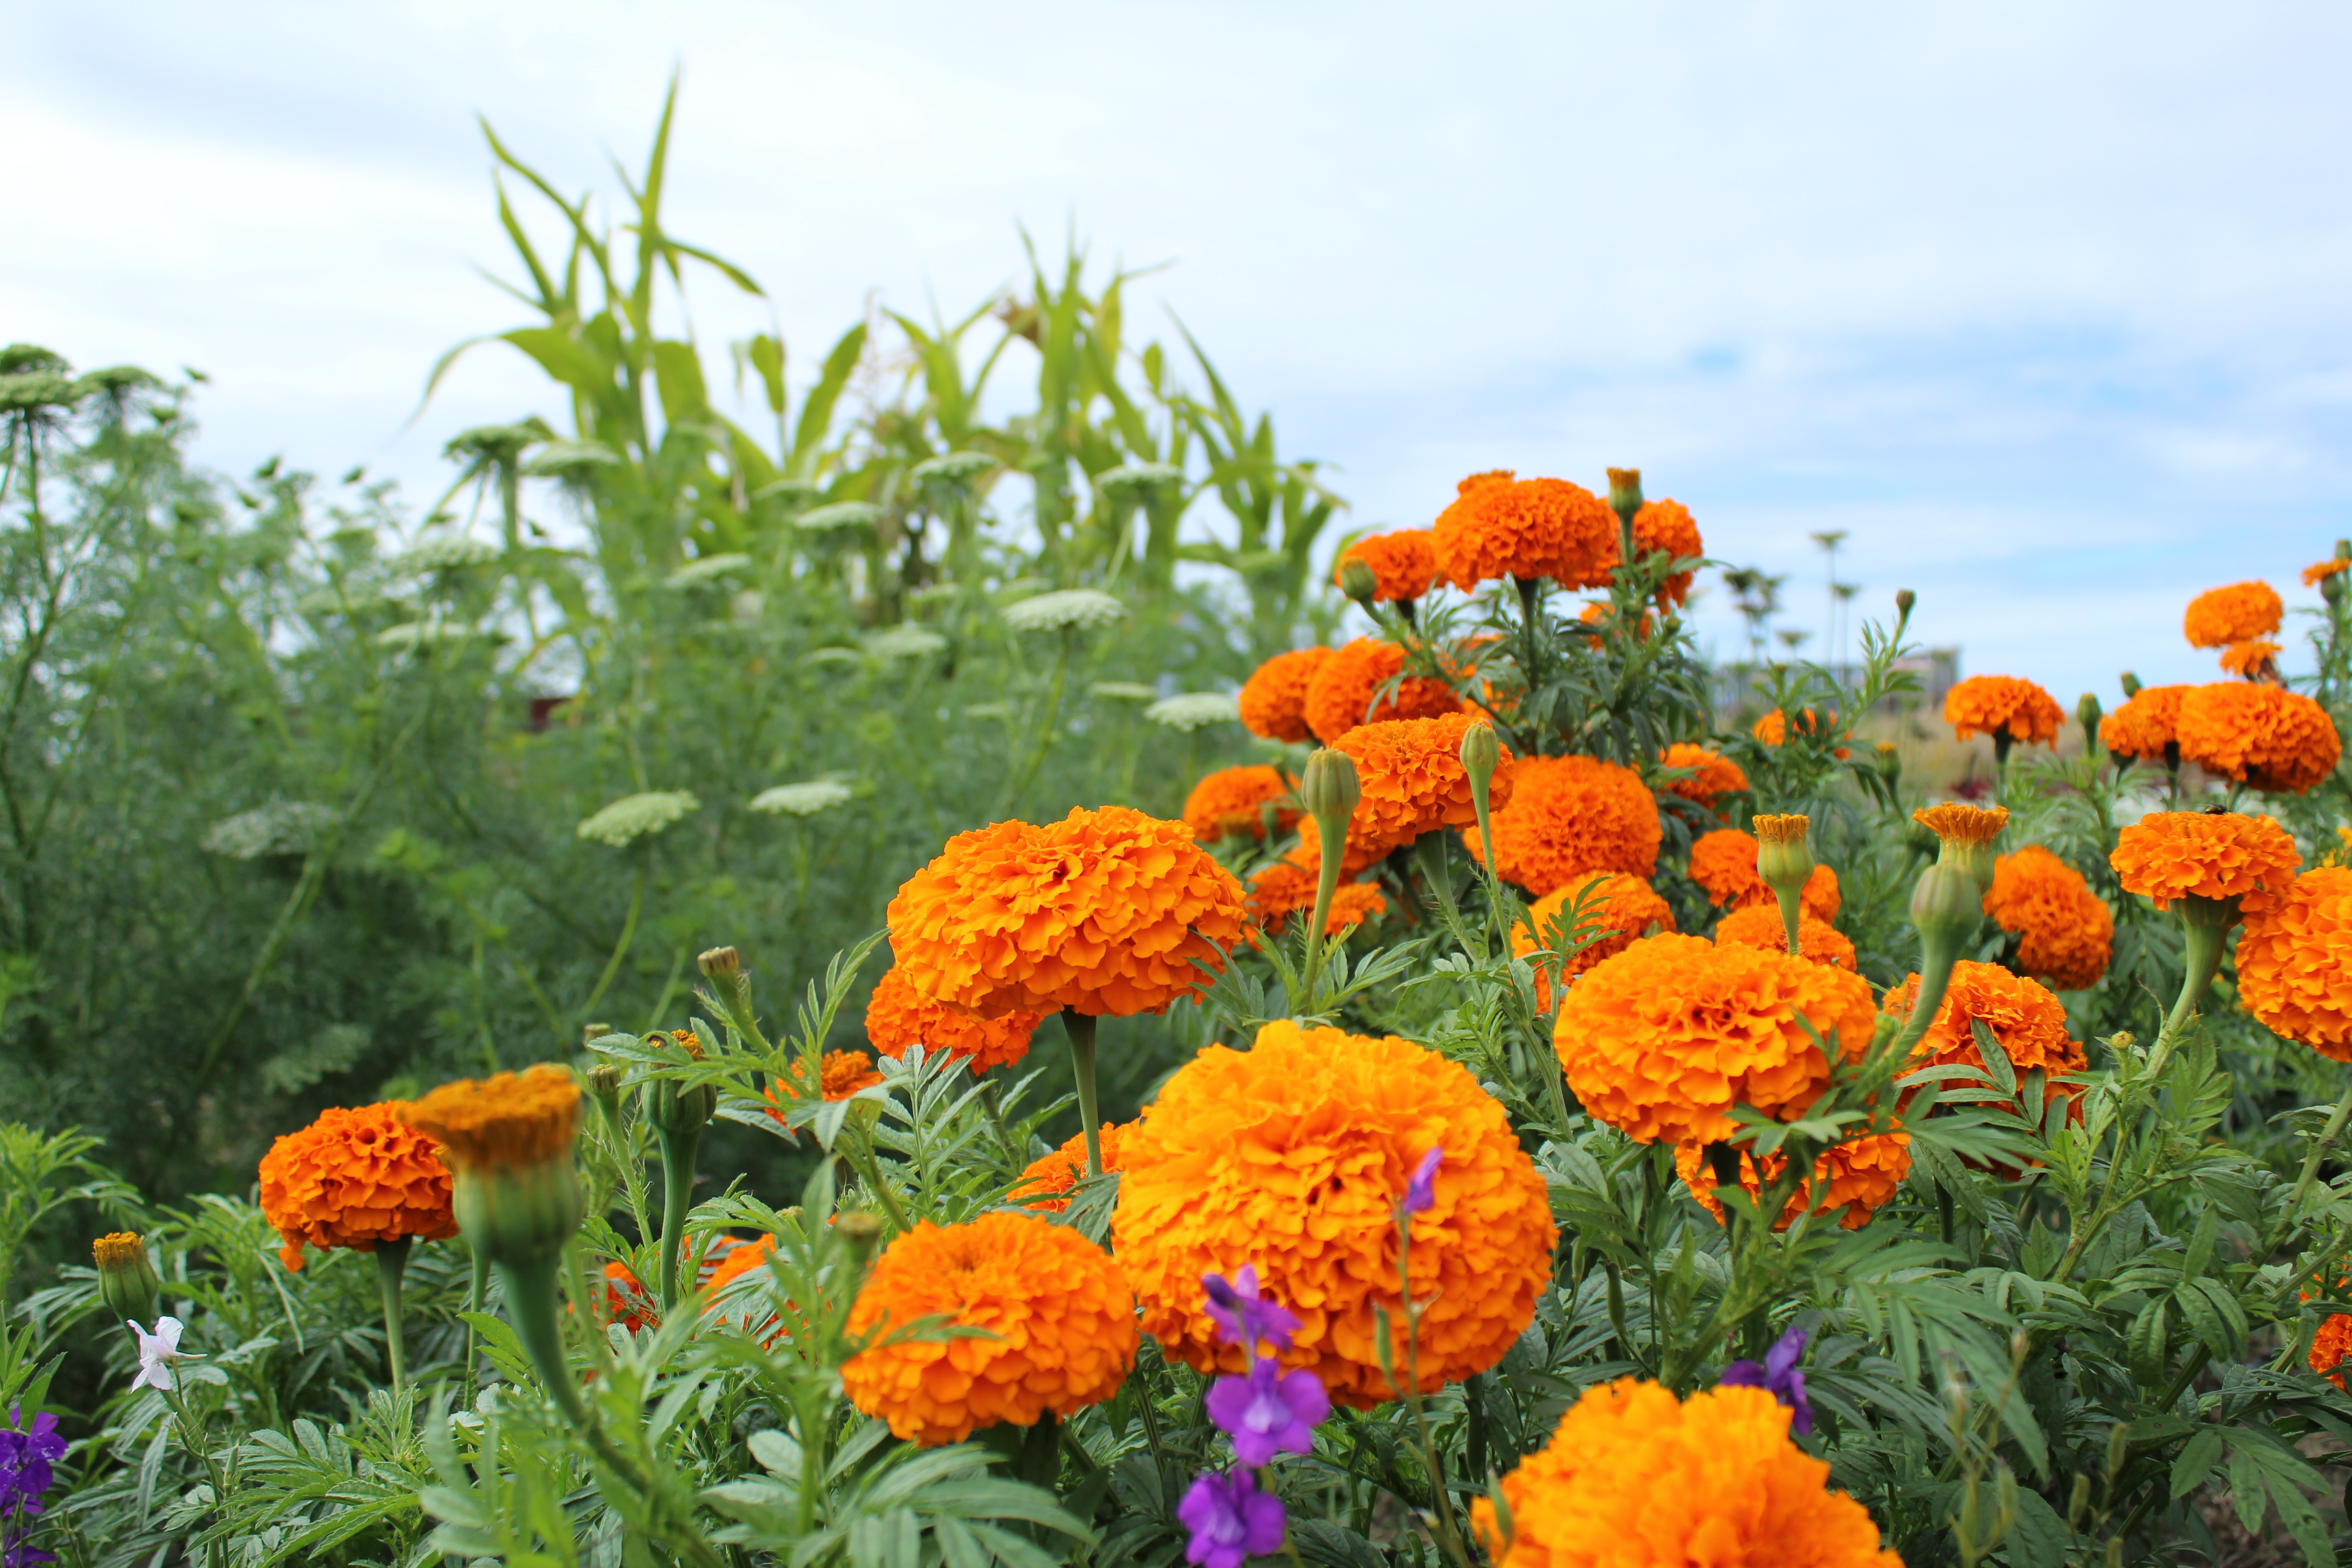 Marigolds in the field.